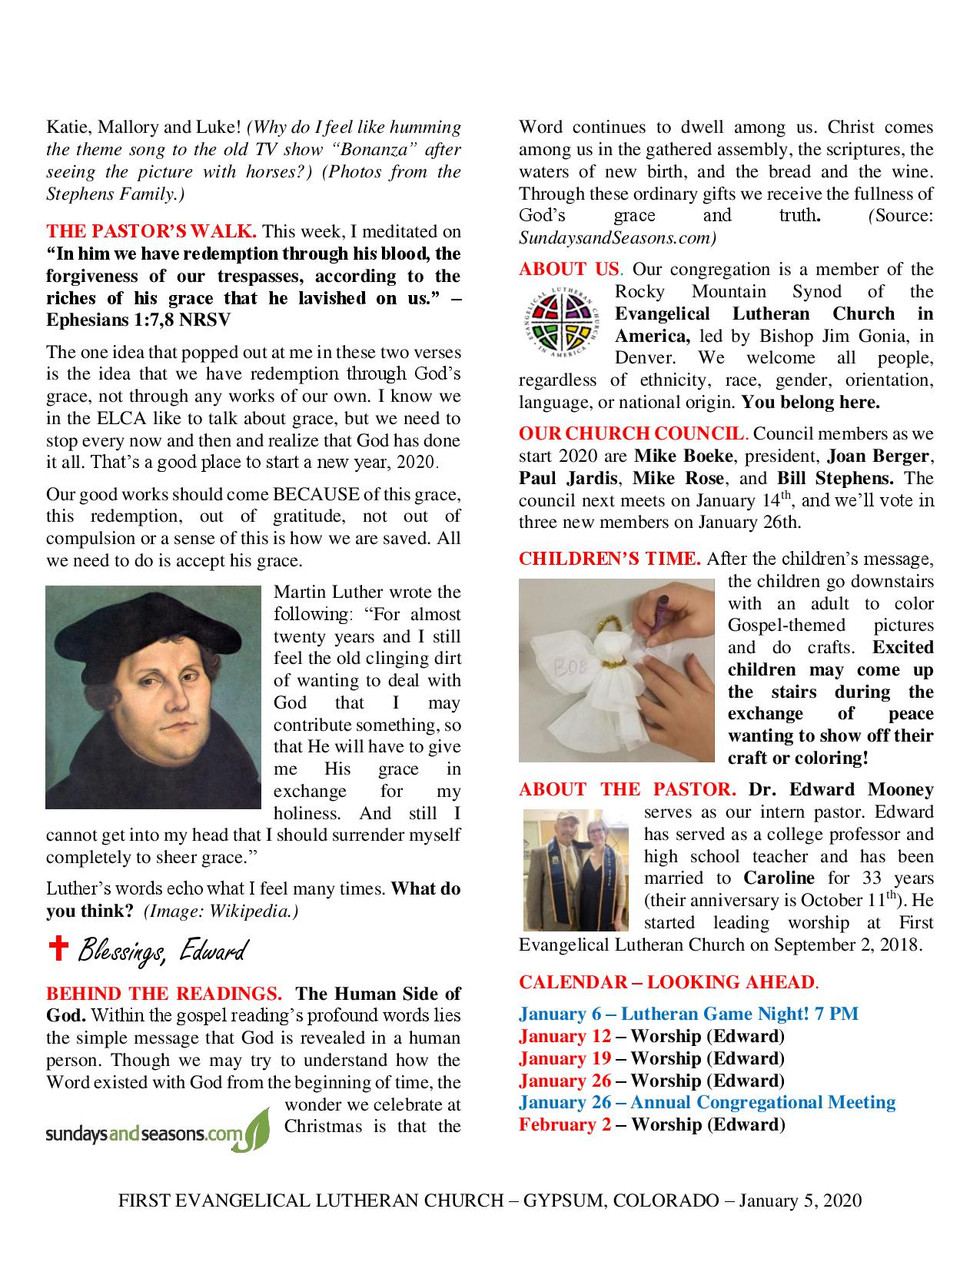 Newsletter, January 5, 2020, page 2